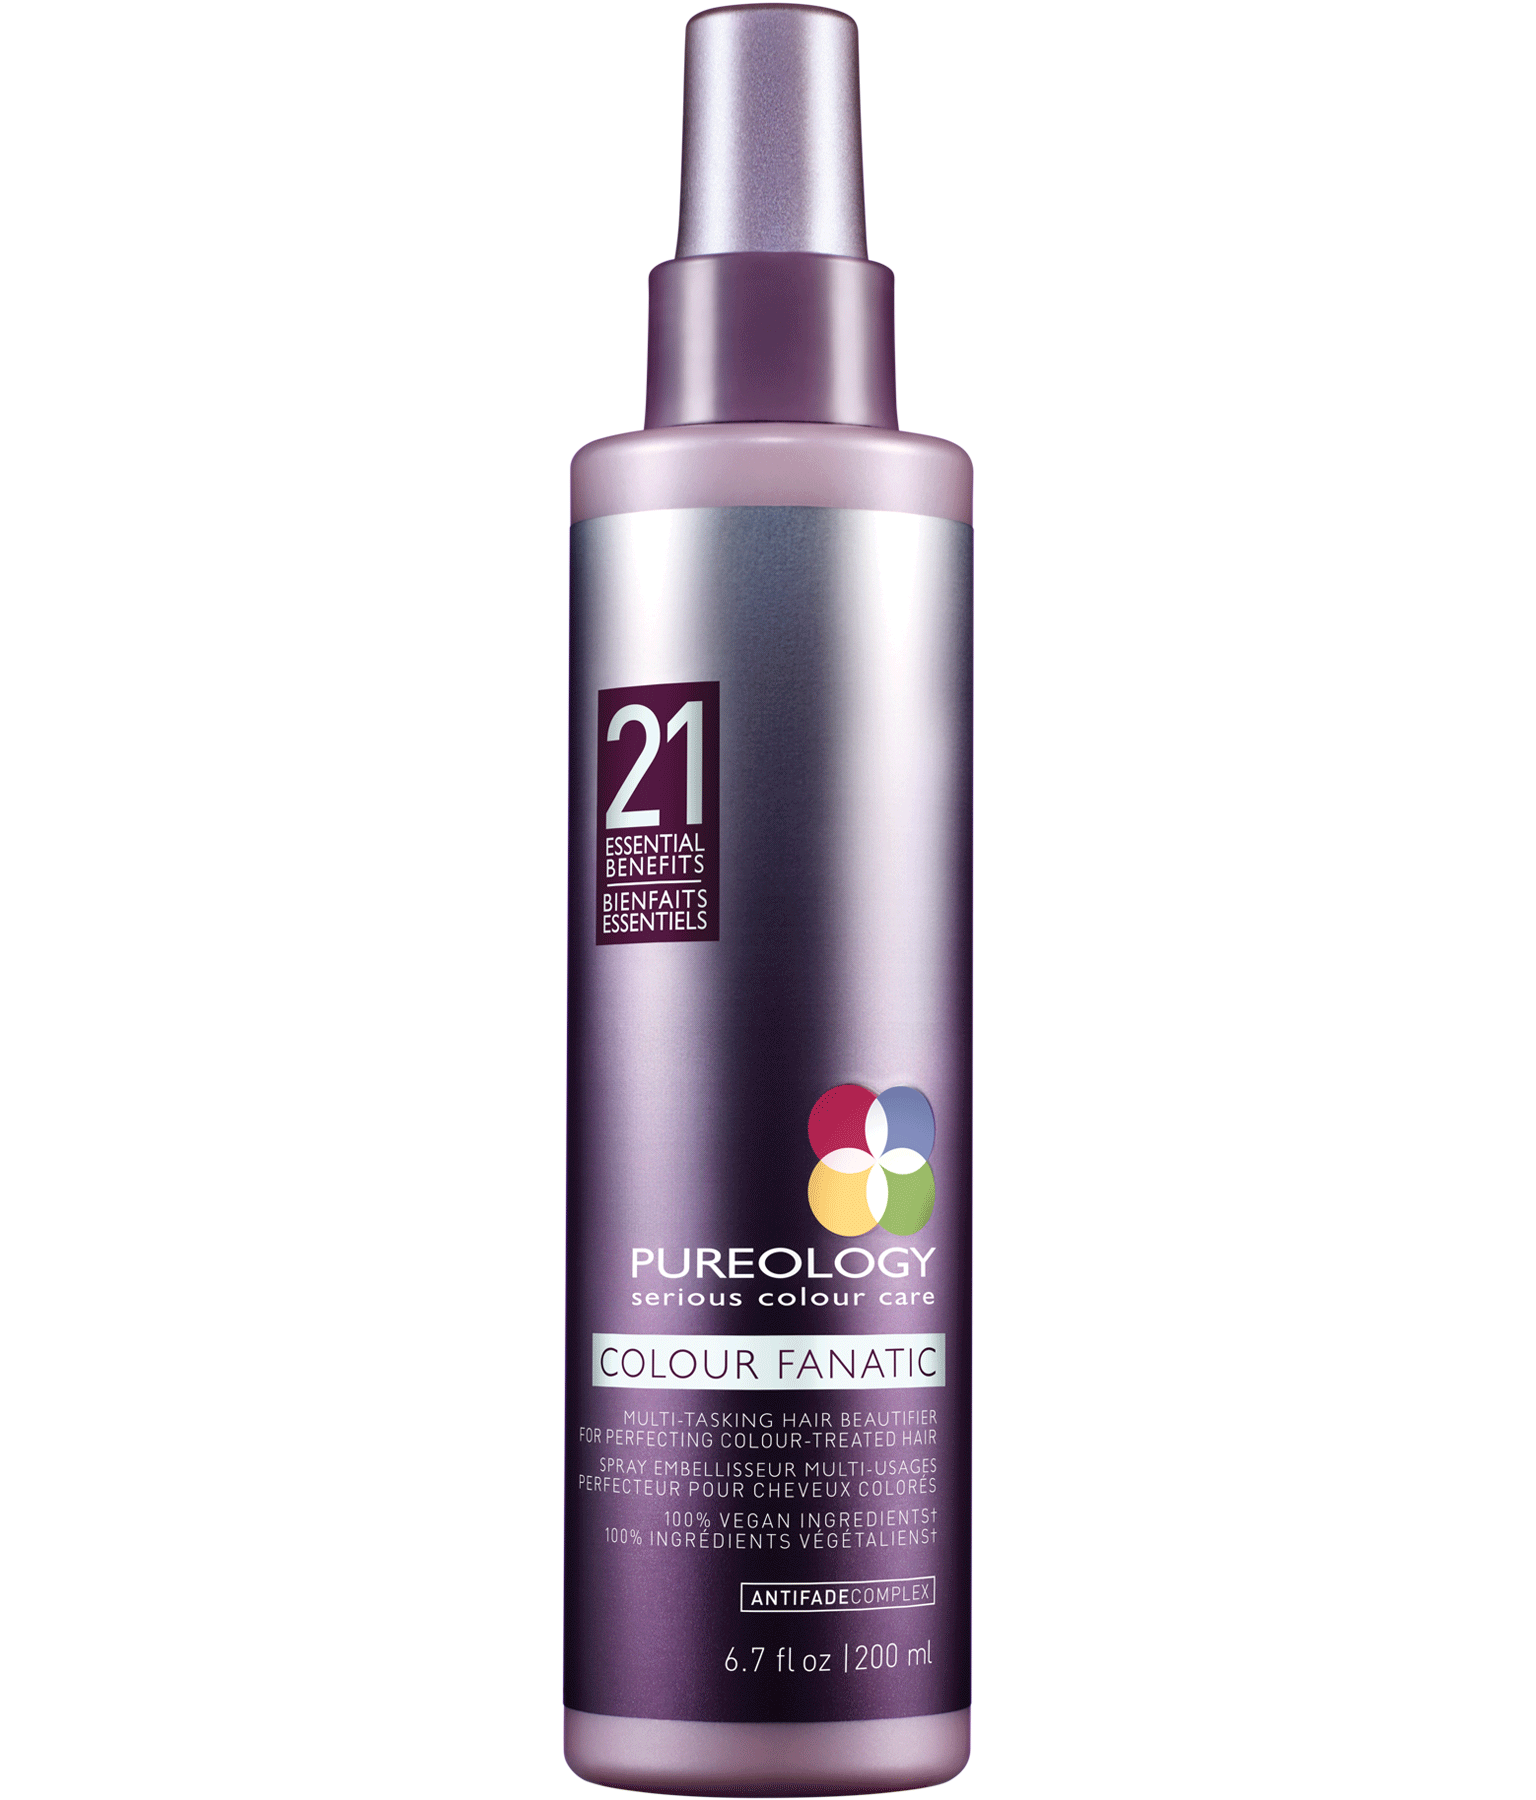 Colour Fanatic Leave In Hair Treatment Spray Pureology